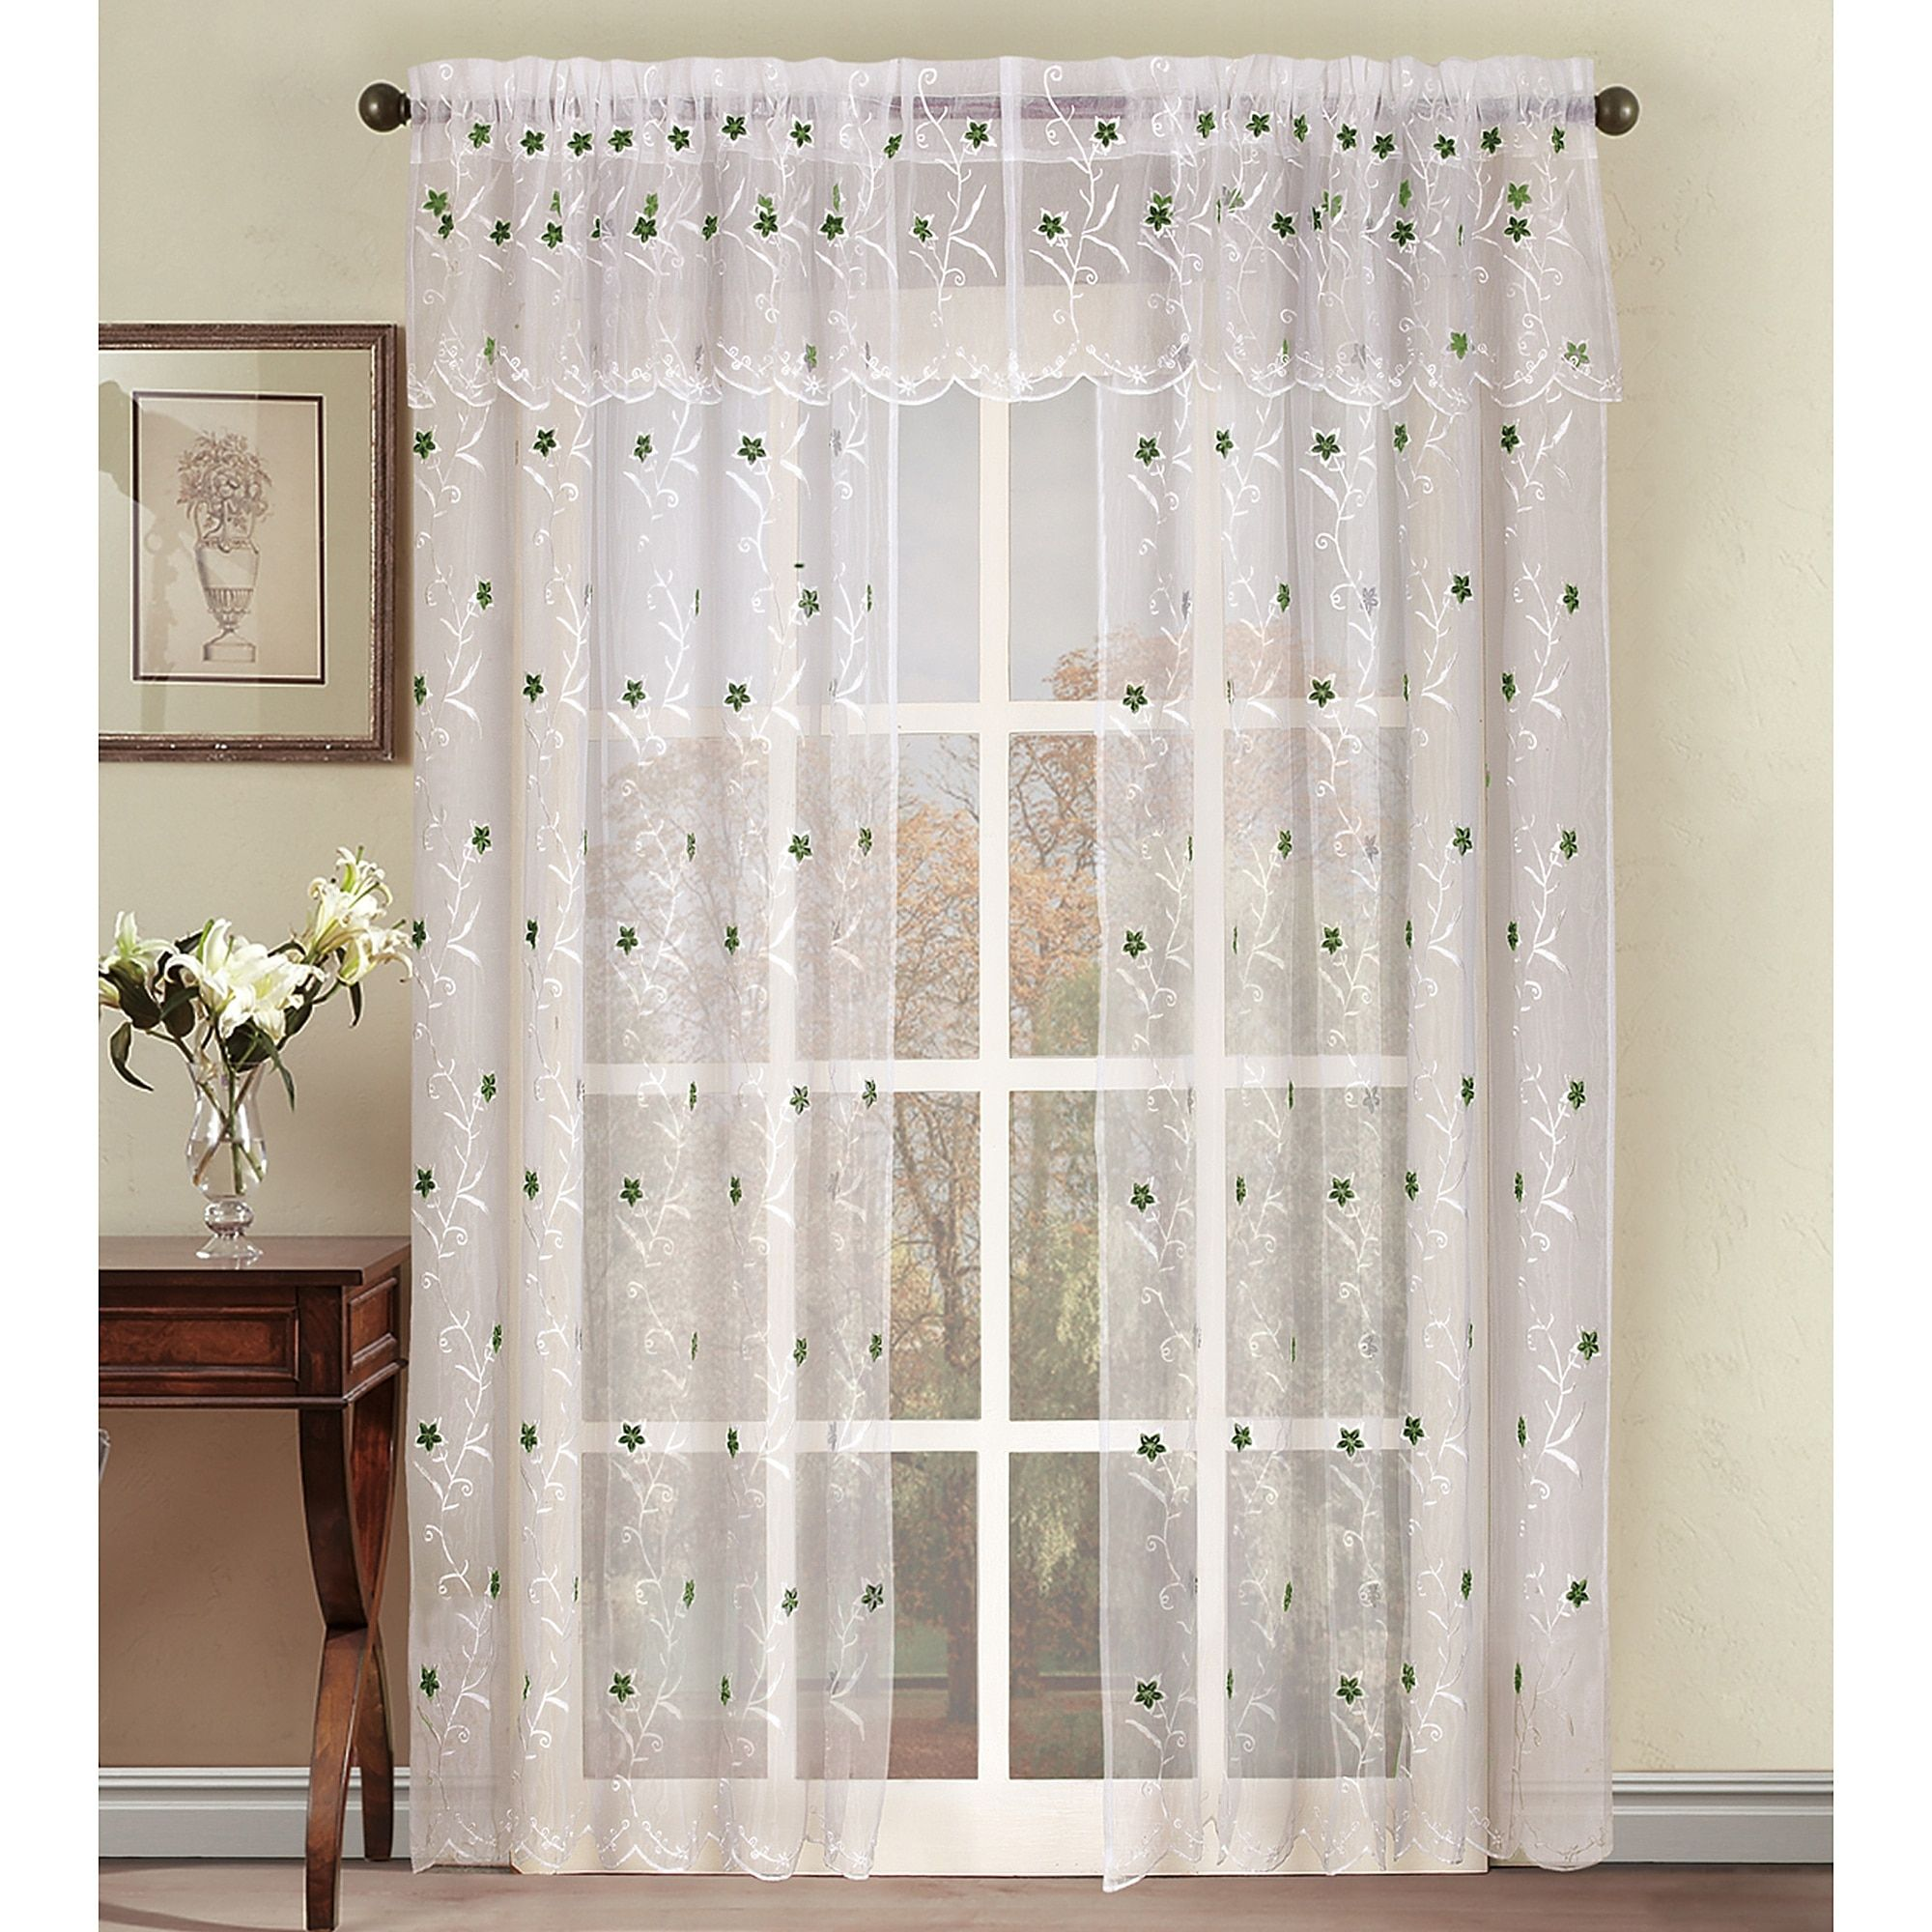 Astor Sheer Embroidered Rod Pocket Window Curtain Panel Bed Bath